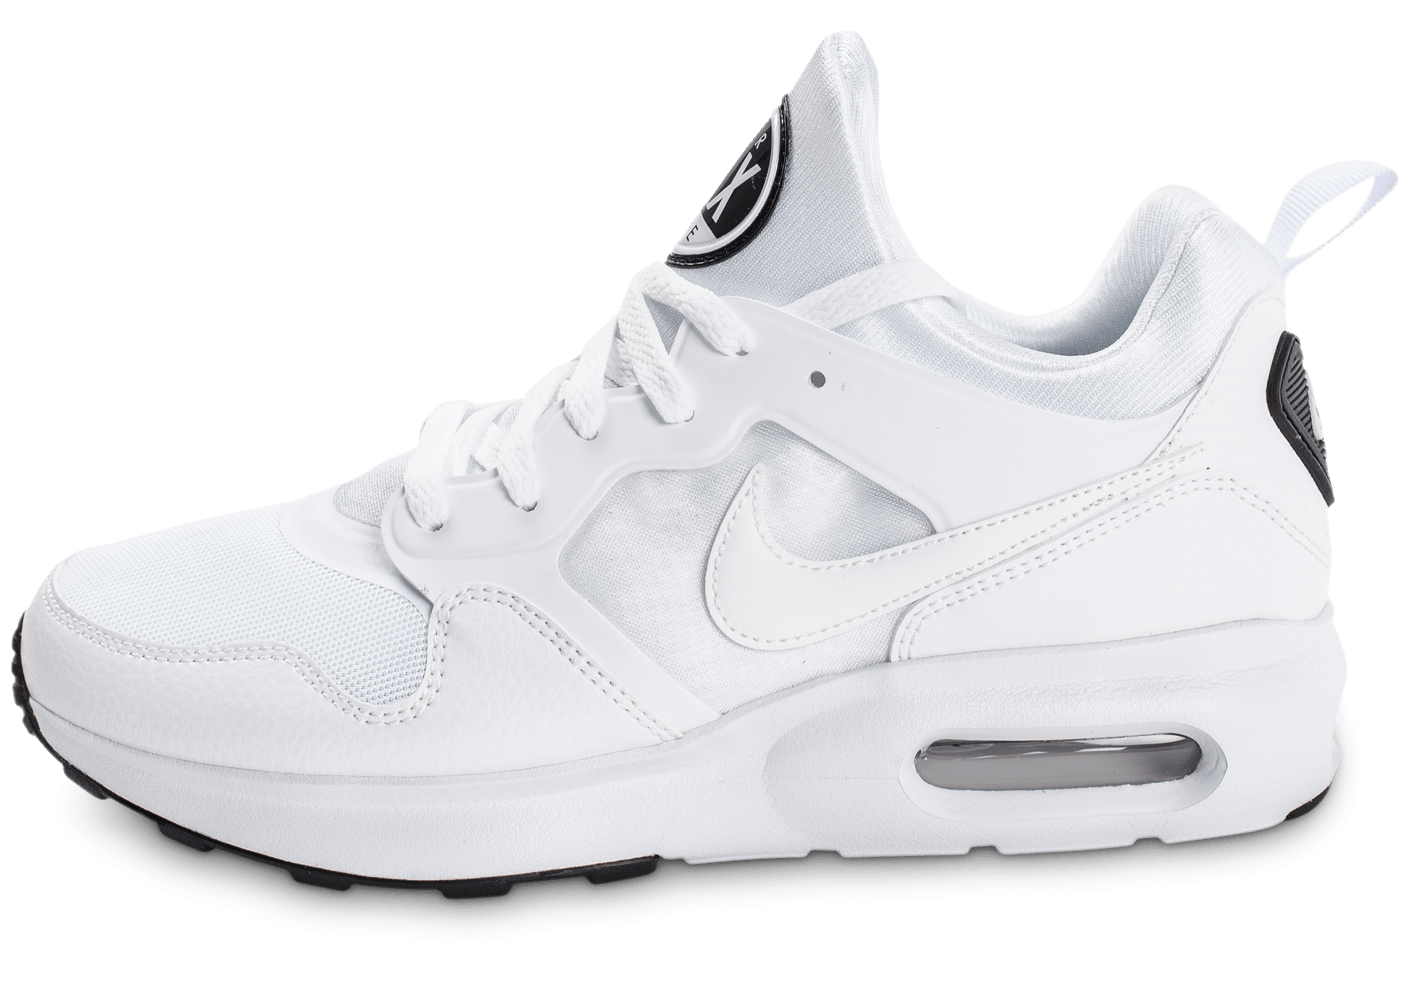 the latest 50029 56ff9 Nike Air Max Prime blanc - Chaussures Baskets homme - Chausport